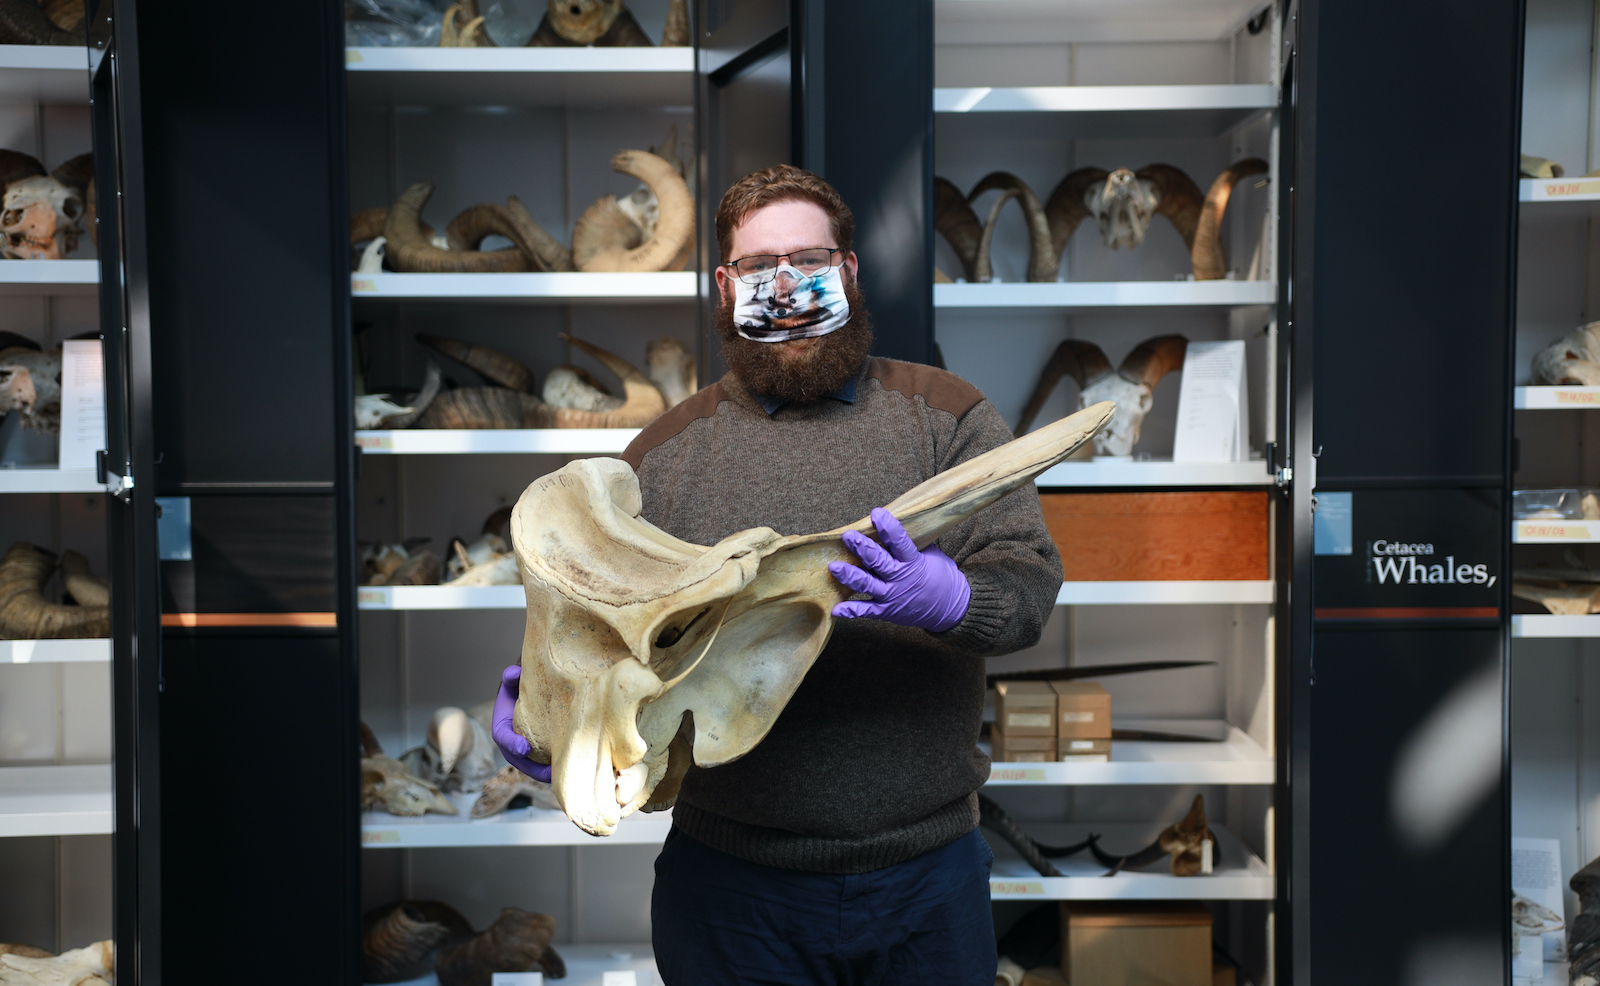 FROM THE COLLECTION // Appreciating the Sculptural Beauty of a Cuvier's Beaked Whale Skull